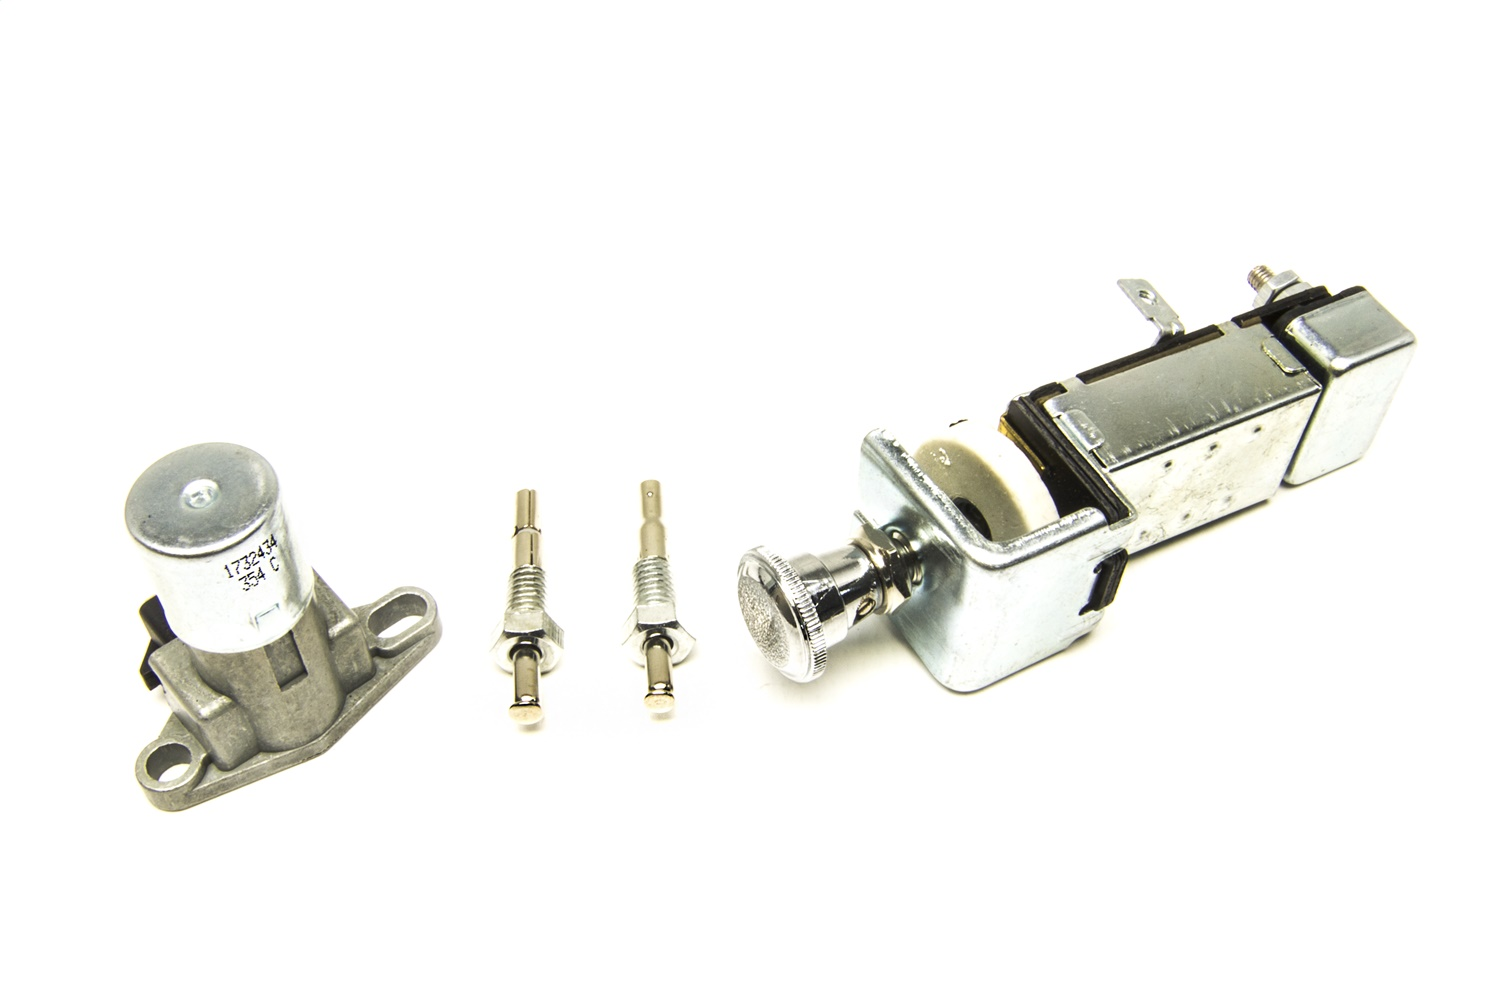 hight resolution of details about painless wiring 80120 headlight door jamb dimmer switch kit